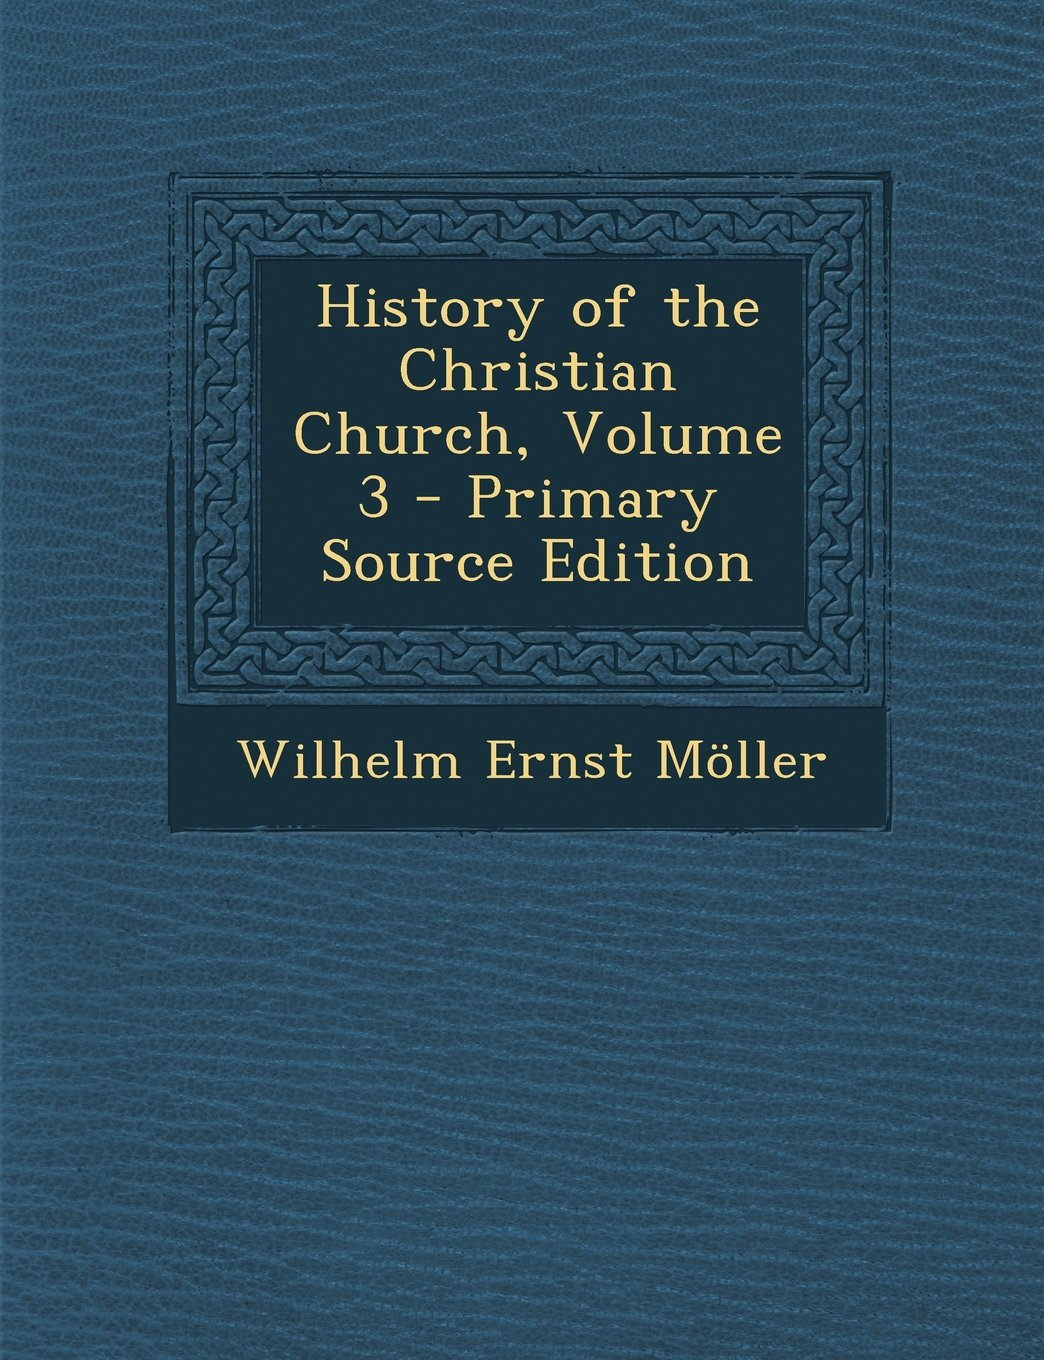 Download History of the Christian Church, Volume 3 - Primary Source Edition PDF